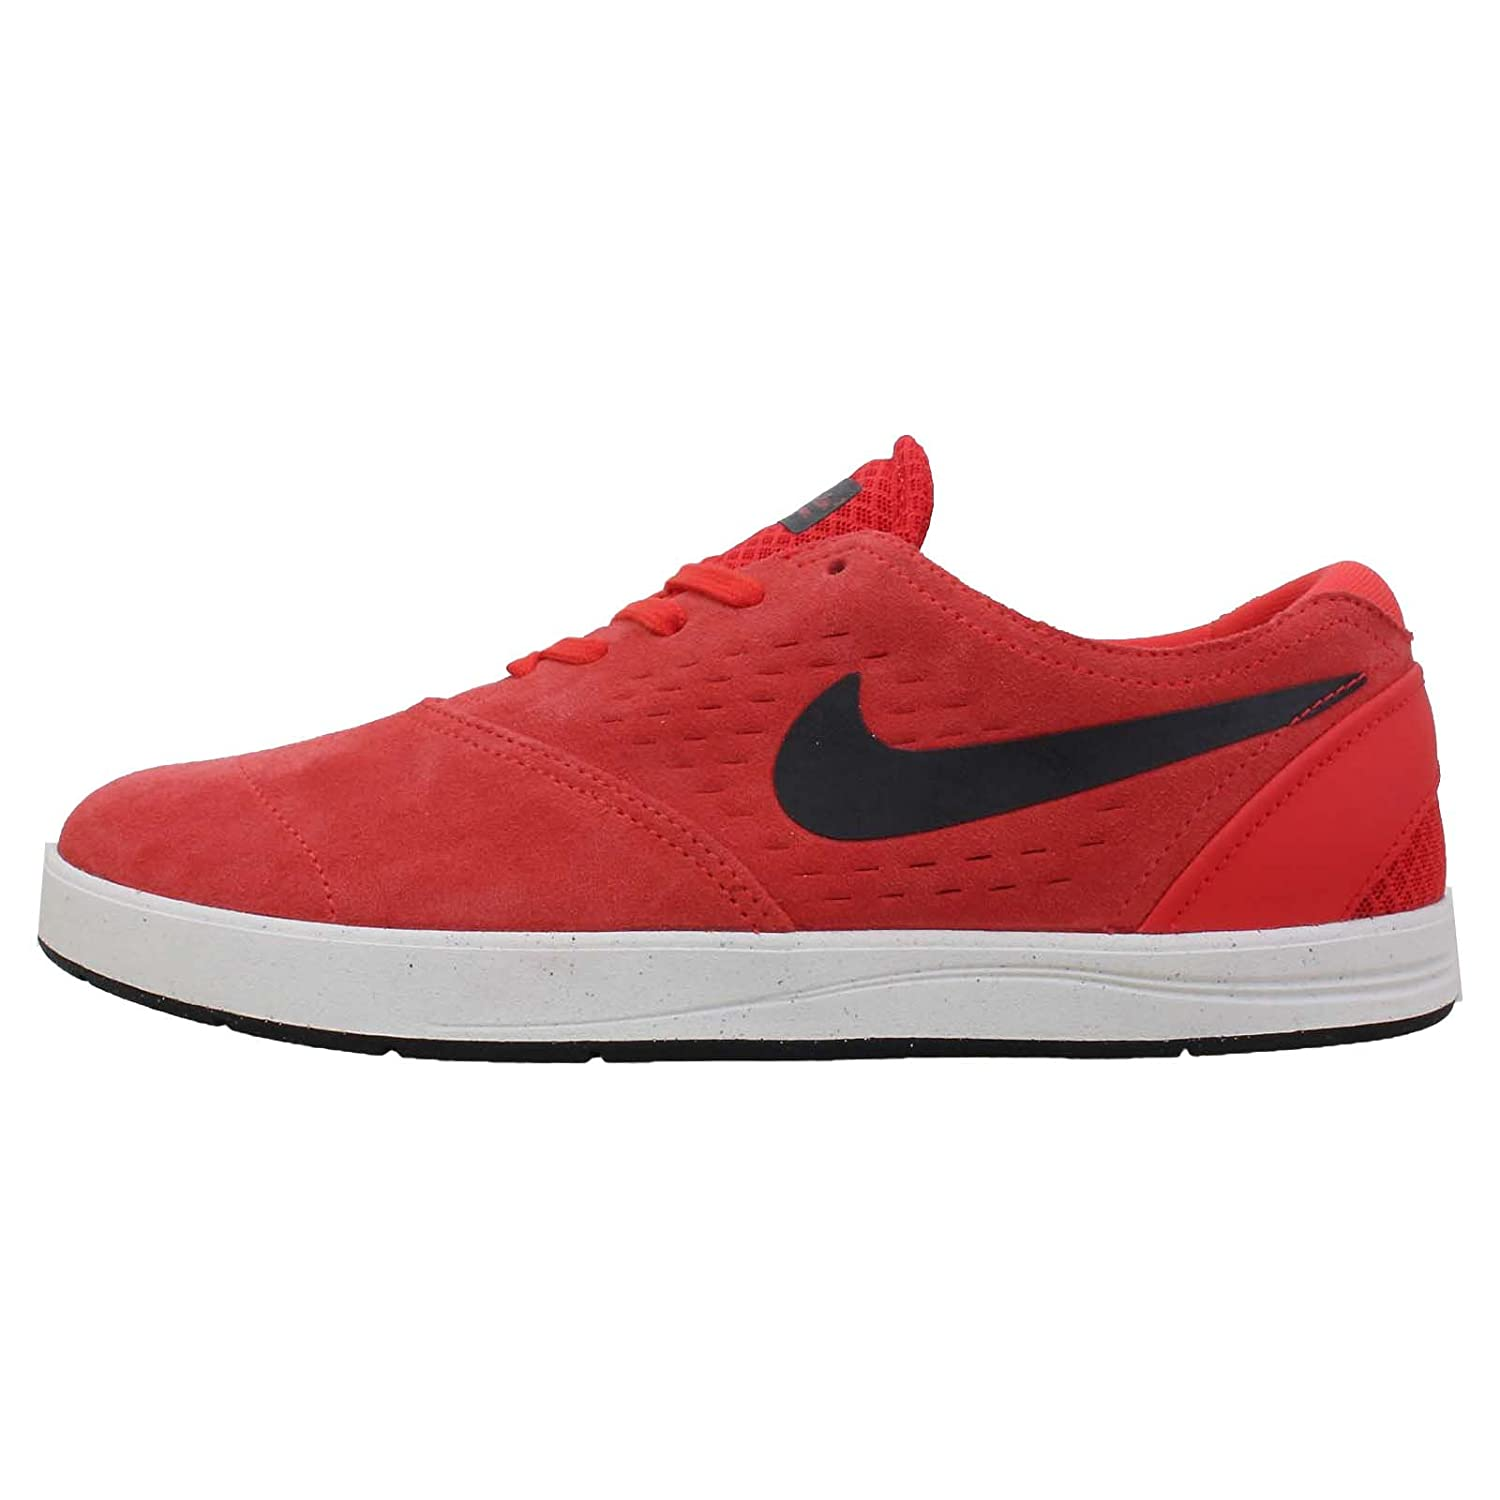 100% authentic f4109 b6ea9 Nike Mens Koston Koston Koston 2 Anthracite Summit-bianca-Volt Leather scarpe  da ginnastica 12 B00TPI1E6M 6 D(M) US Light Crimson nero Crystal Mint ...